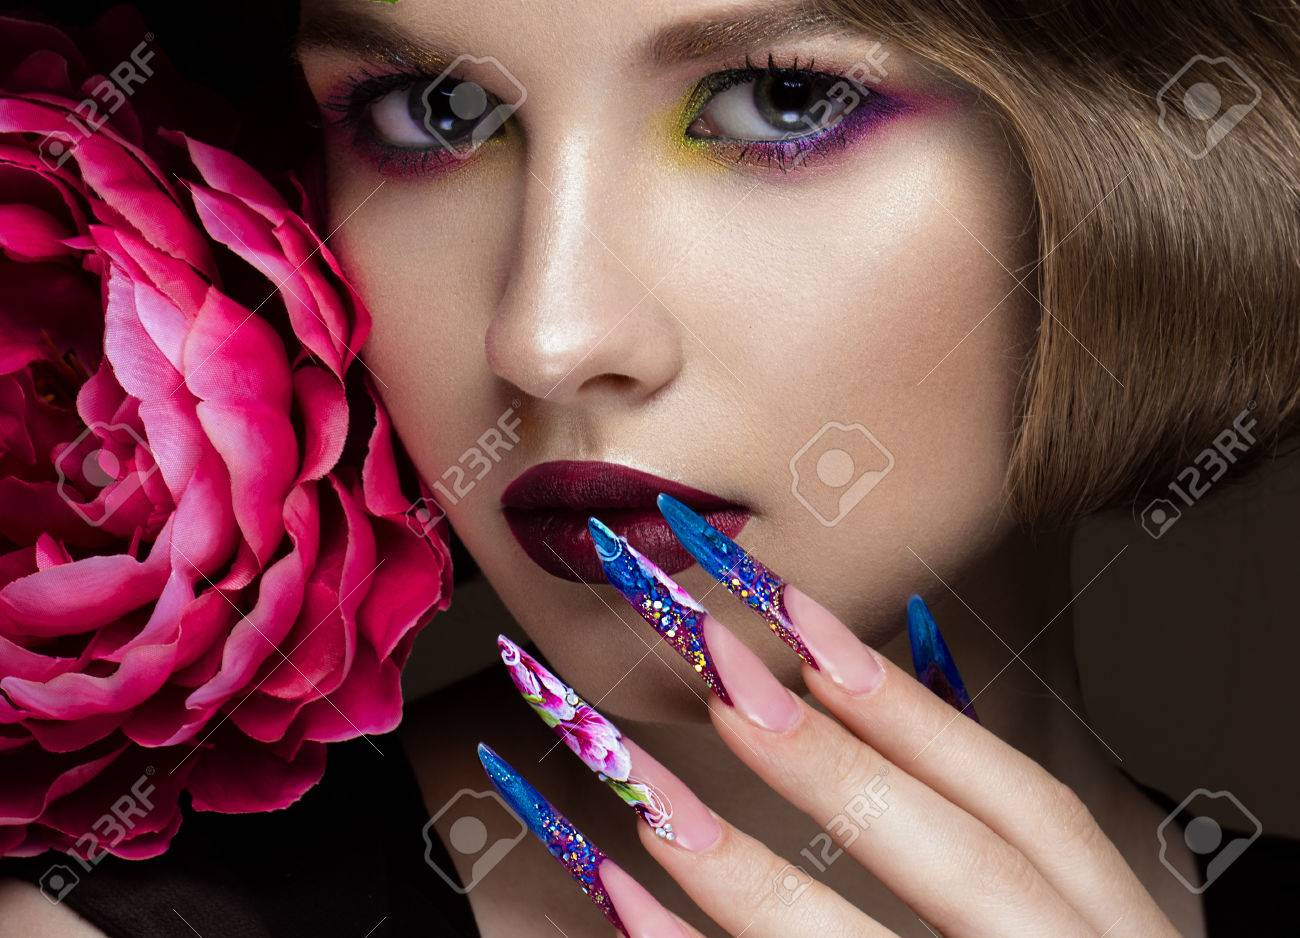 Beautiful girl with colorful make-up, flowers, retro hairstyle and long nails. Manicure design. The beauty of the face. Photos shot in studio - 57853907